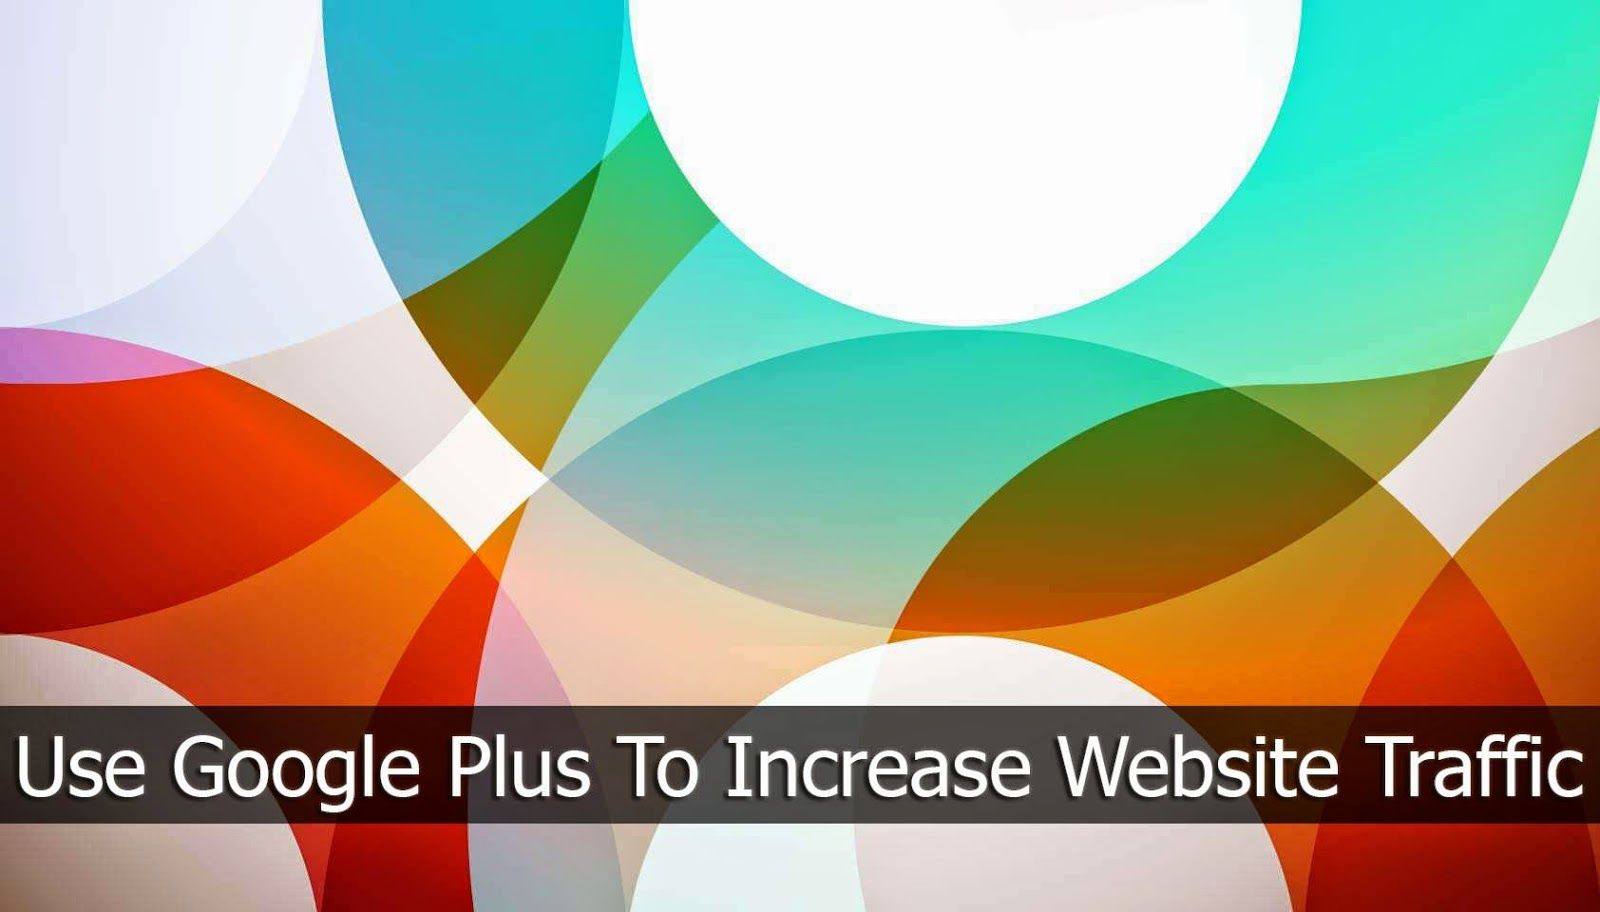 How To Use Google Plus To Increase Website Traffic?